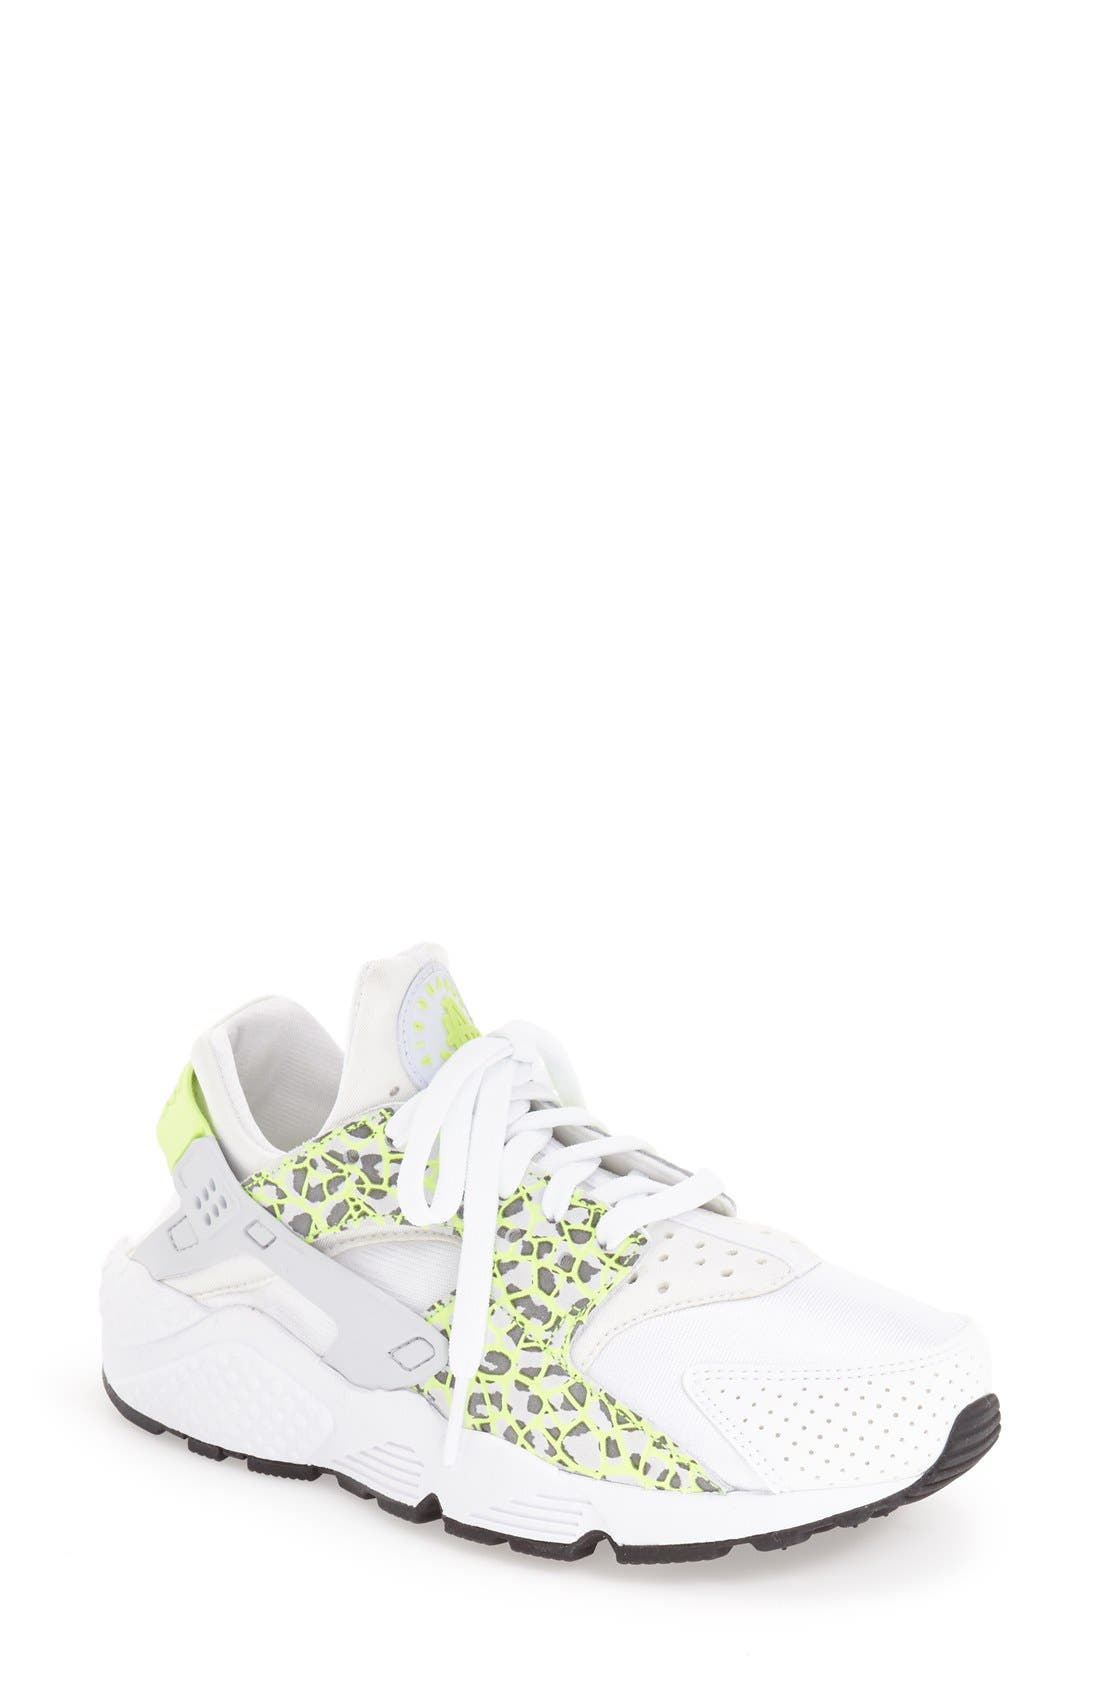 Main Image - Nike 'Air Huarache' Sneaker (Women)